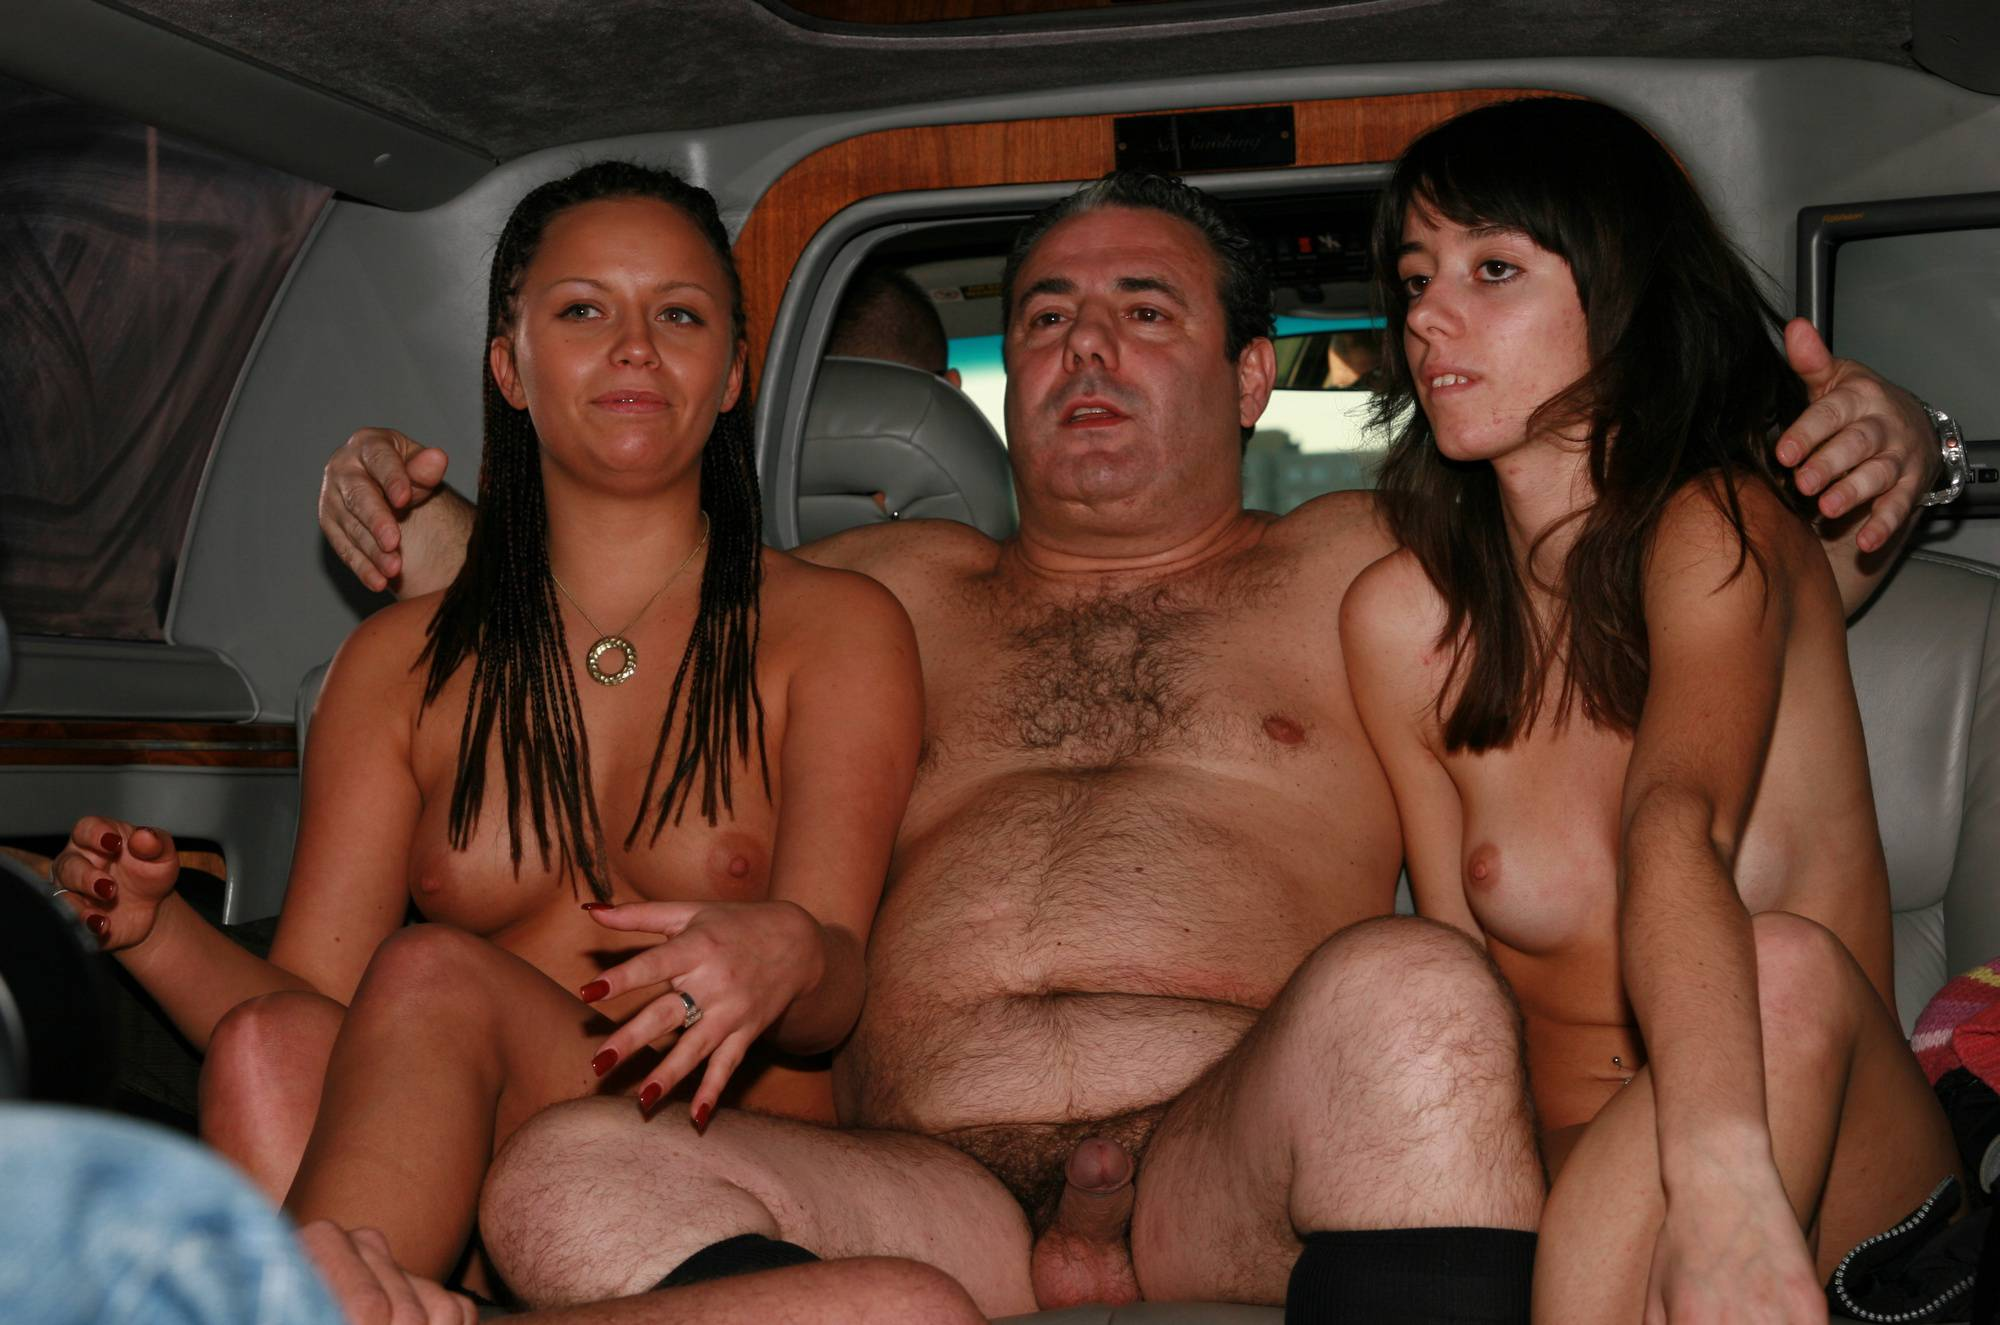 Nudist Photos Nude Limousine Friends - 1